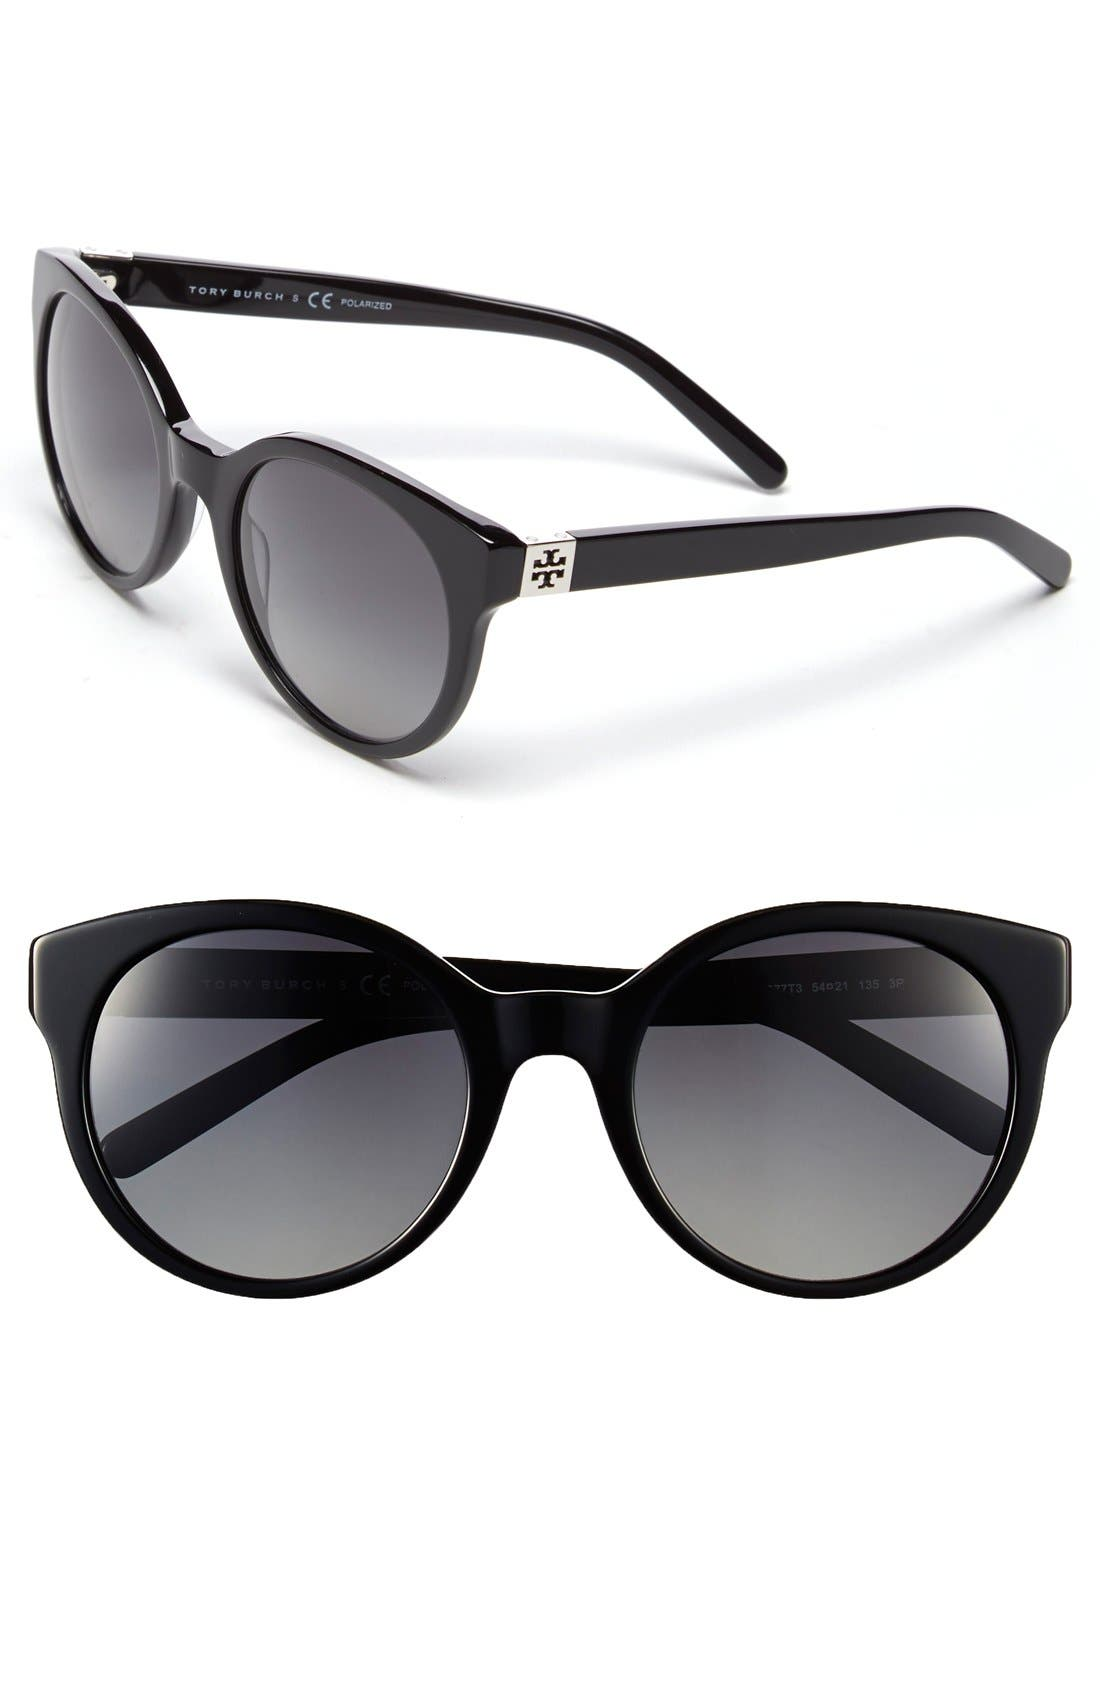 Main Image - Tory Burch 54mm Polarized Cat Eye Sunglasses (Nordstrom Exclusive)